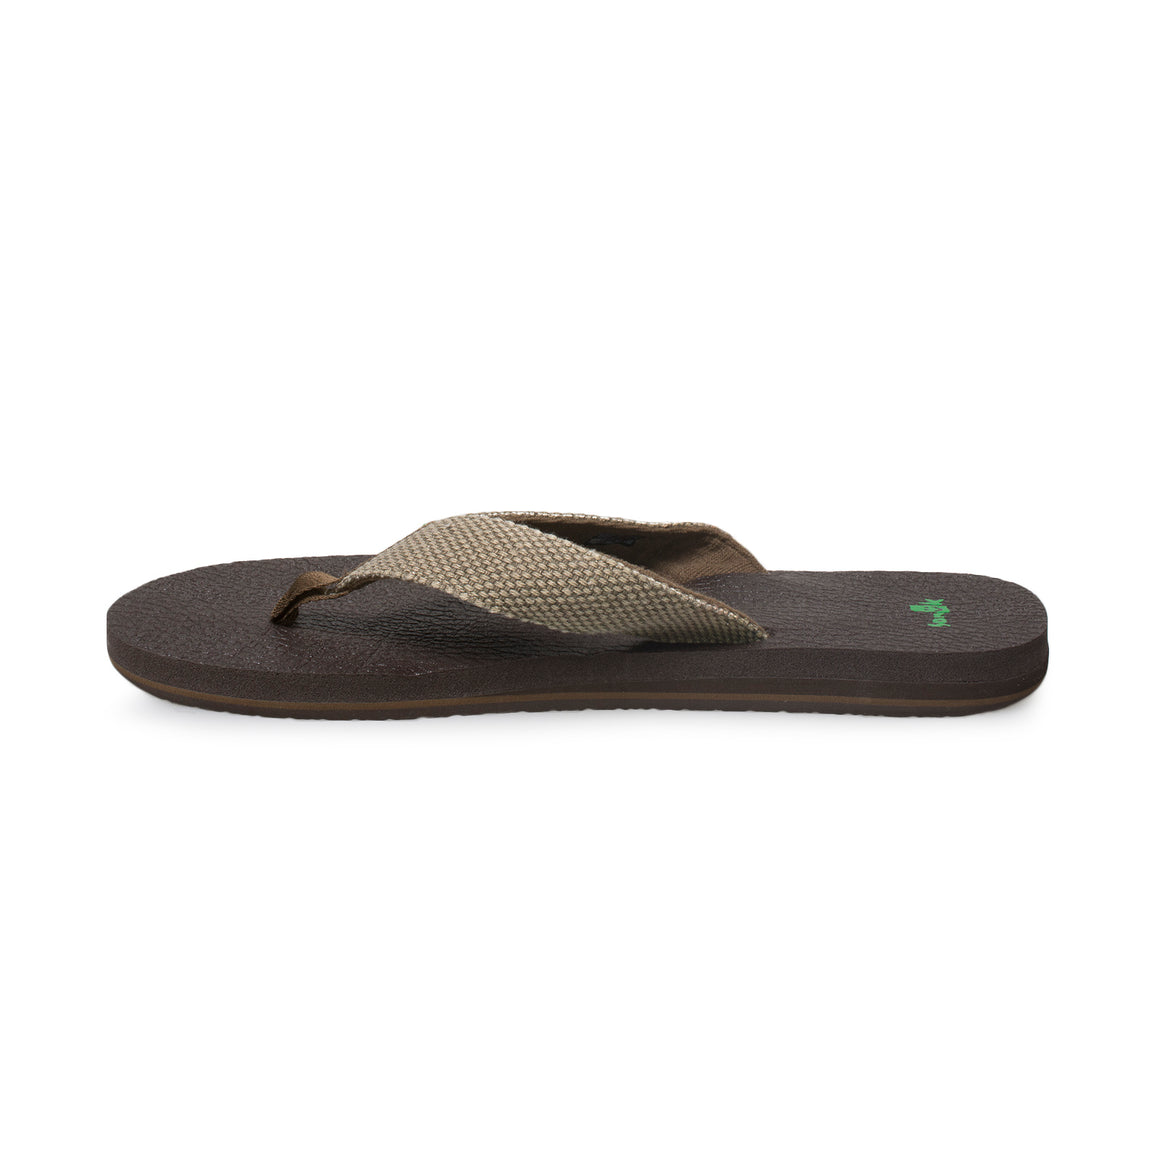 Sanuk Yogi 4 Brown Weave Flip Flops - Men's